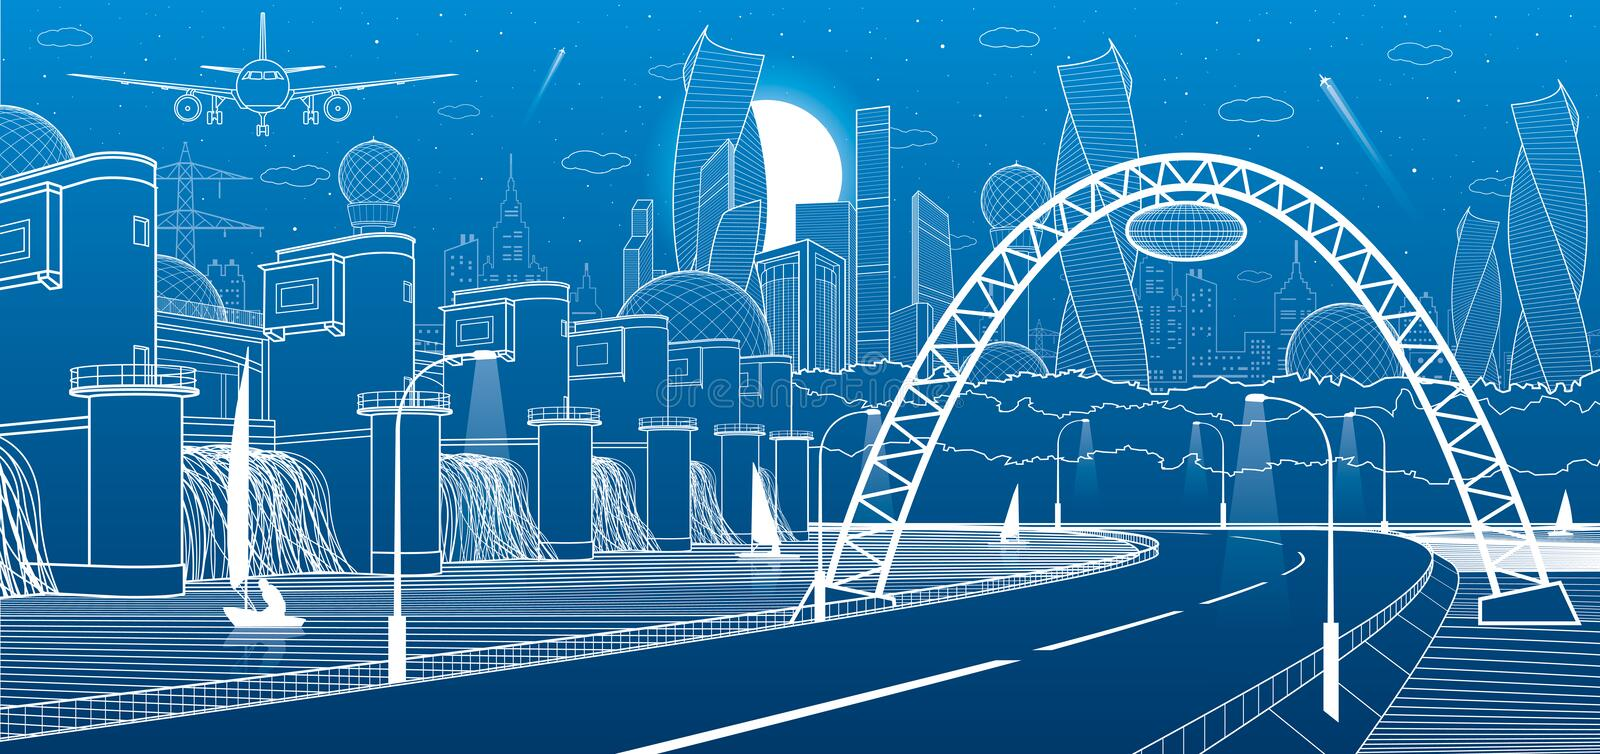 City infrastructure industrial and energy illustration. Hydro power plant. River Dam. Automobile road. Illuminated highway. White vector illustration